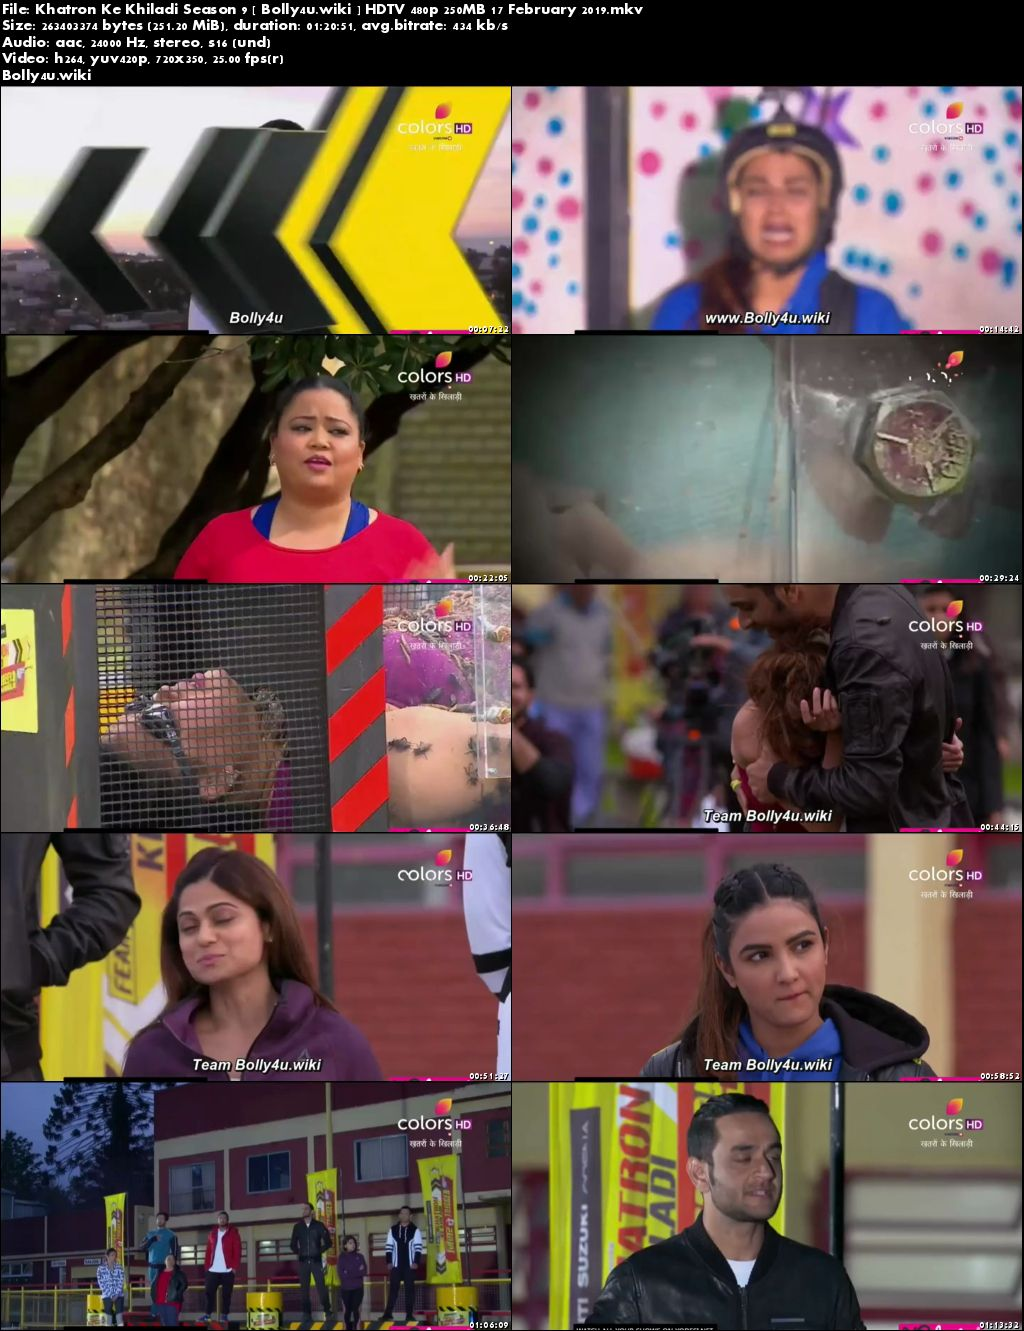 Khatron Ke Khiladi Season 9 HDTV 480p 250MB 17 February 2019 Download